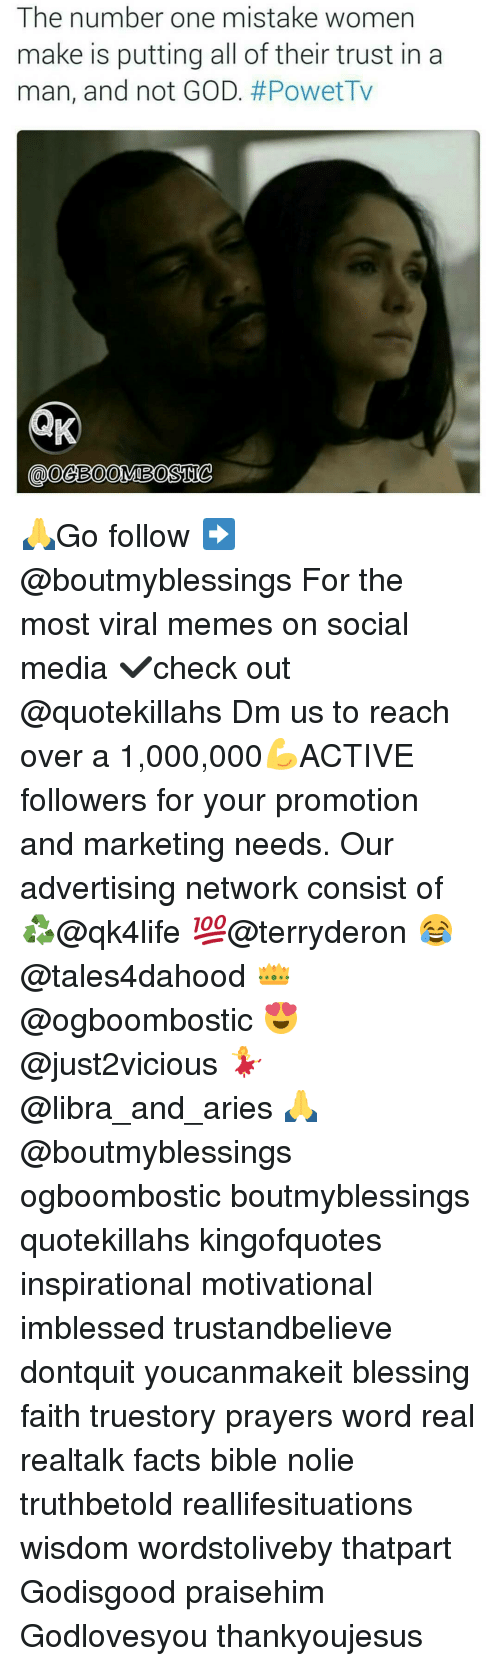 Facts, God, and Memes: The number one mistake women  make is putting all of their trust in a  man, and not GOD  🙏Go follow ➡@boutmyblessings For the most viral memes on social media ✔check out @quotekillahs Dm us to reach over a 1,000,000💪ACTIVE followers for your promotion and marketing needs. Our advertising network consist of ♻@qk4life 💯@terryderon 😂@tales4dahood 👑@ogboombostic 😍@just2vicious 💃@libra_and_aries 🙏@boutmyblessings ogboombostic boutmyblessings quotekillahs kingofquotes inspirational motivational imblessed trustandbelieve dontquit youcanmakeit blessing faith truestory prayers word real realtalk facts bible nolie truthbetold reallifesituations wisdom wordstoliveby thatpart Godisgood praisehim Godlovesyou thankyoujesus